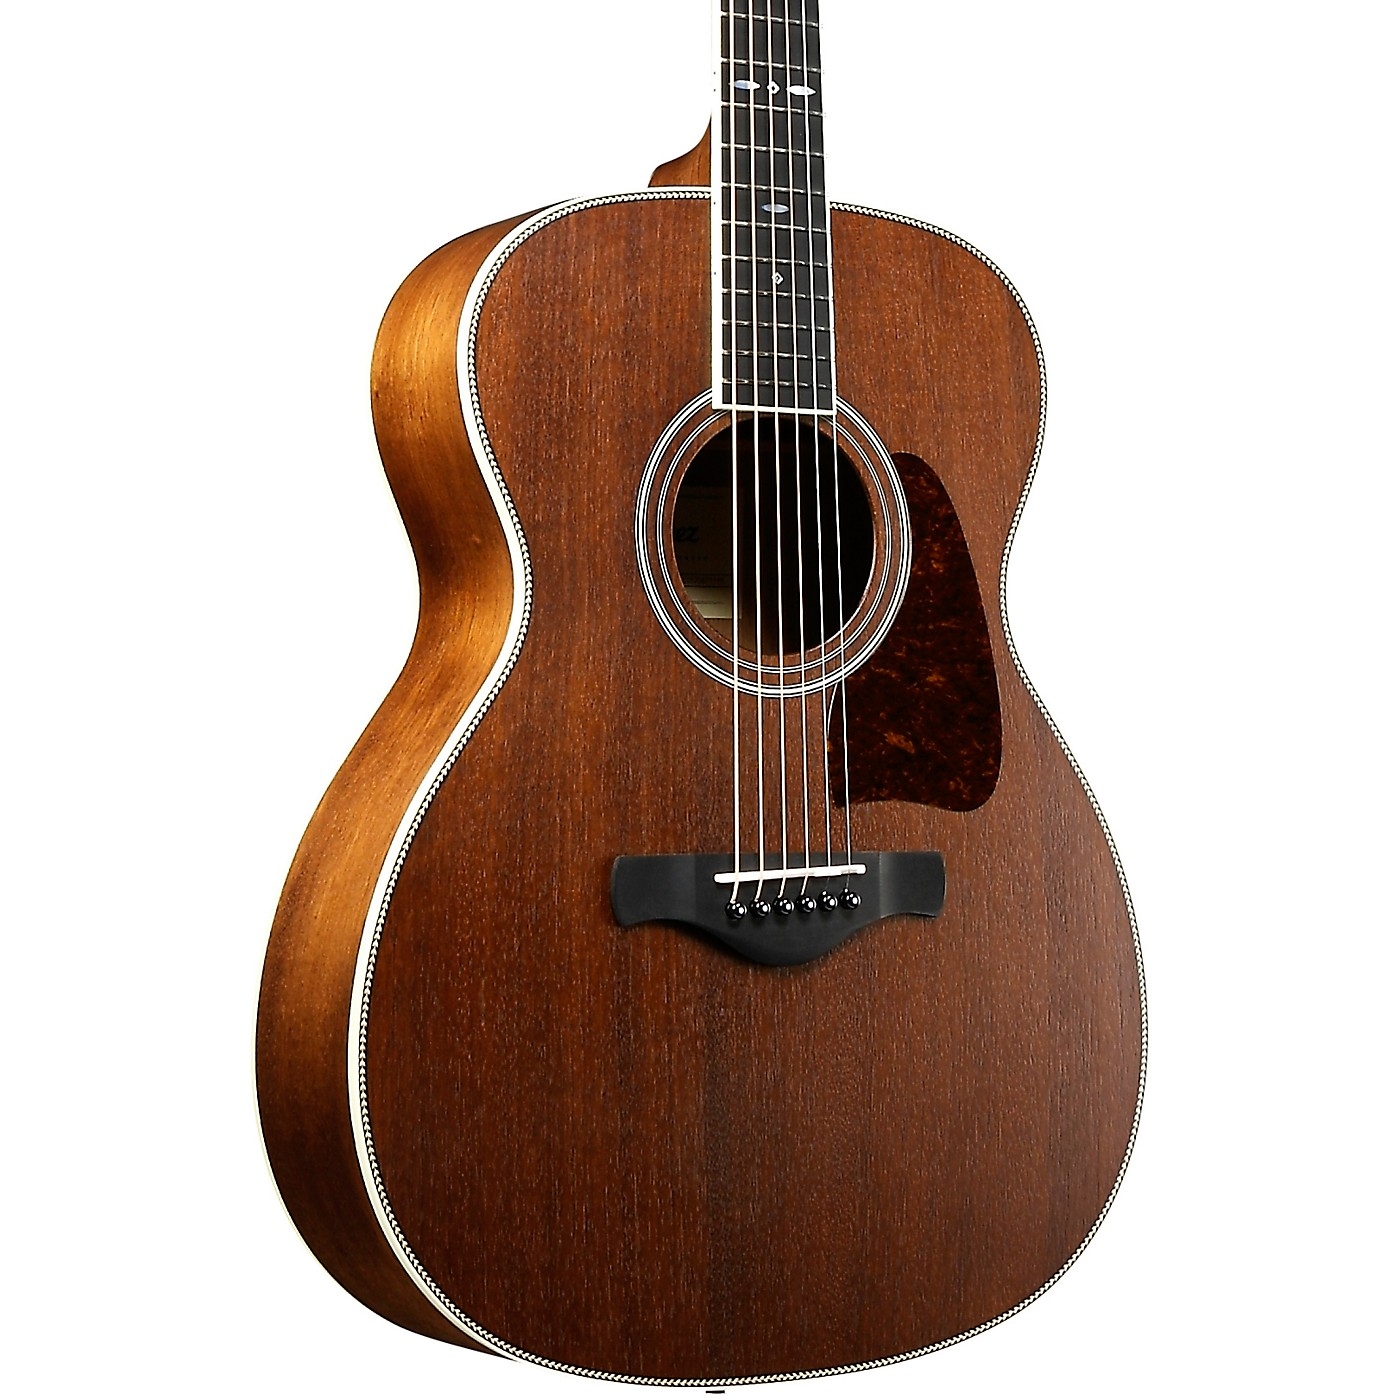 Ibanez AVC10MHOPN Ibanez Artwood Thermo Aged Solid Top Grand Concert Acoustic Guitar thumbnail